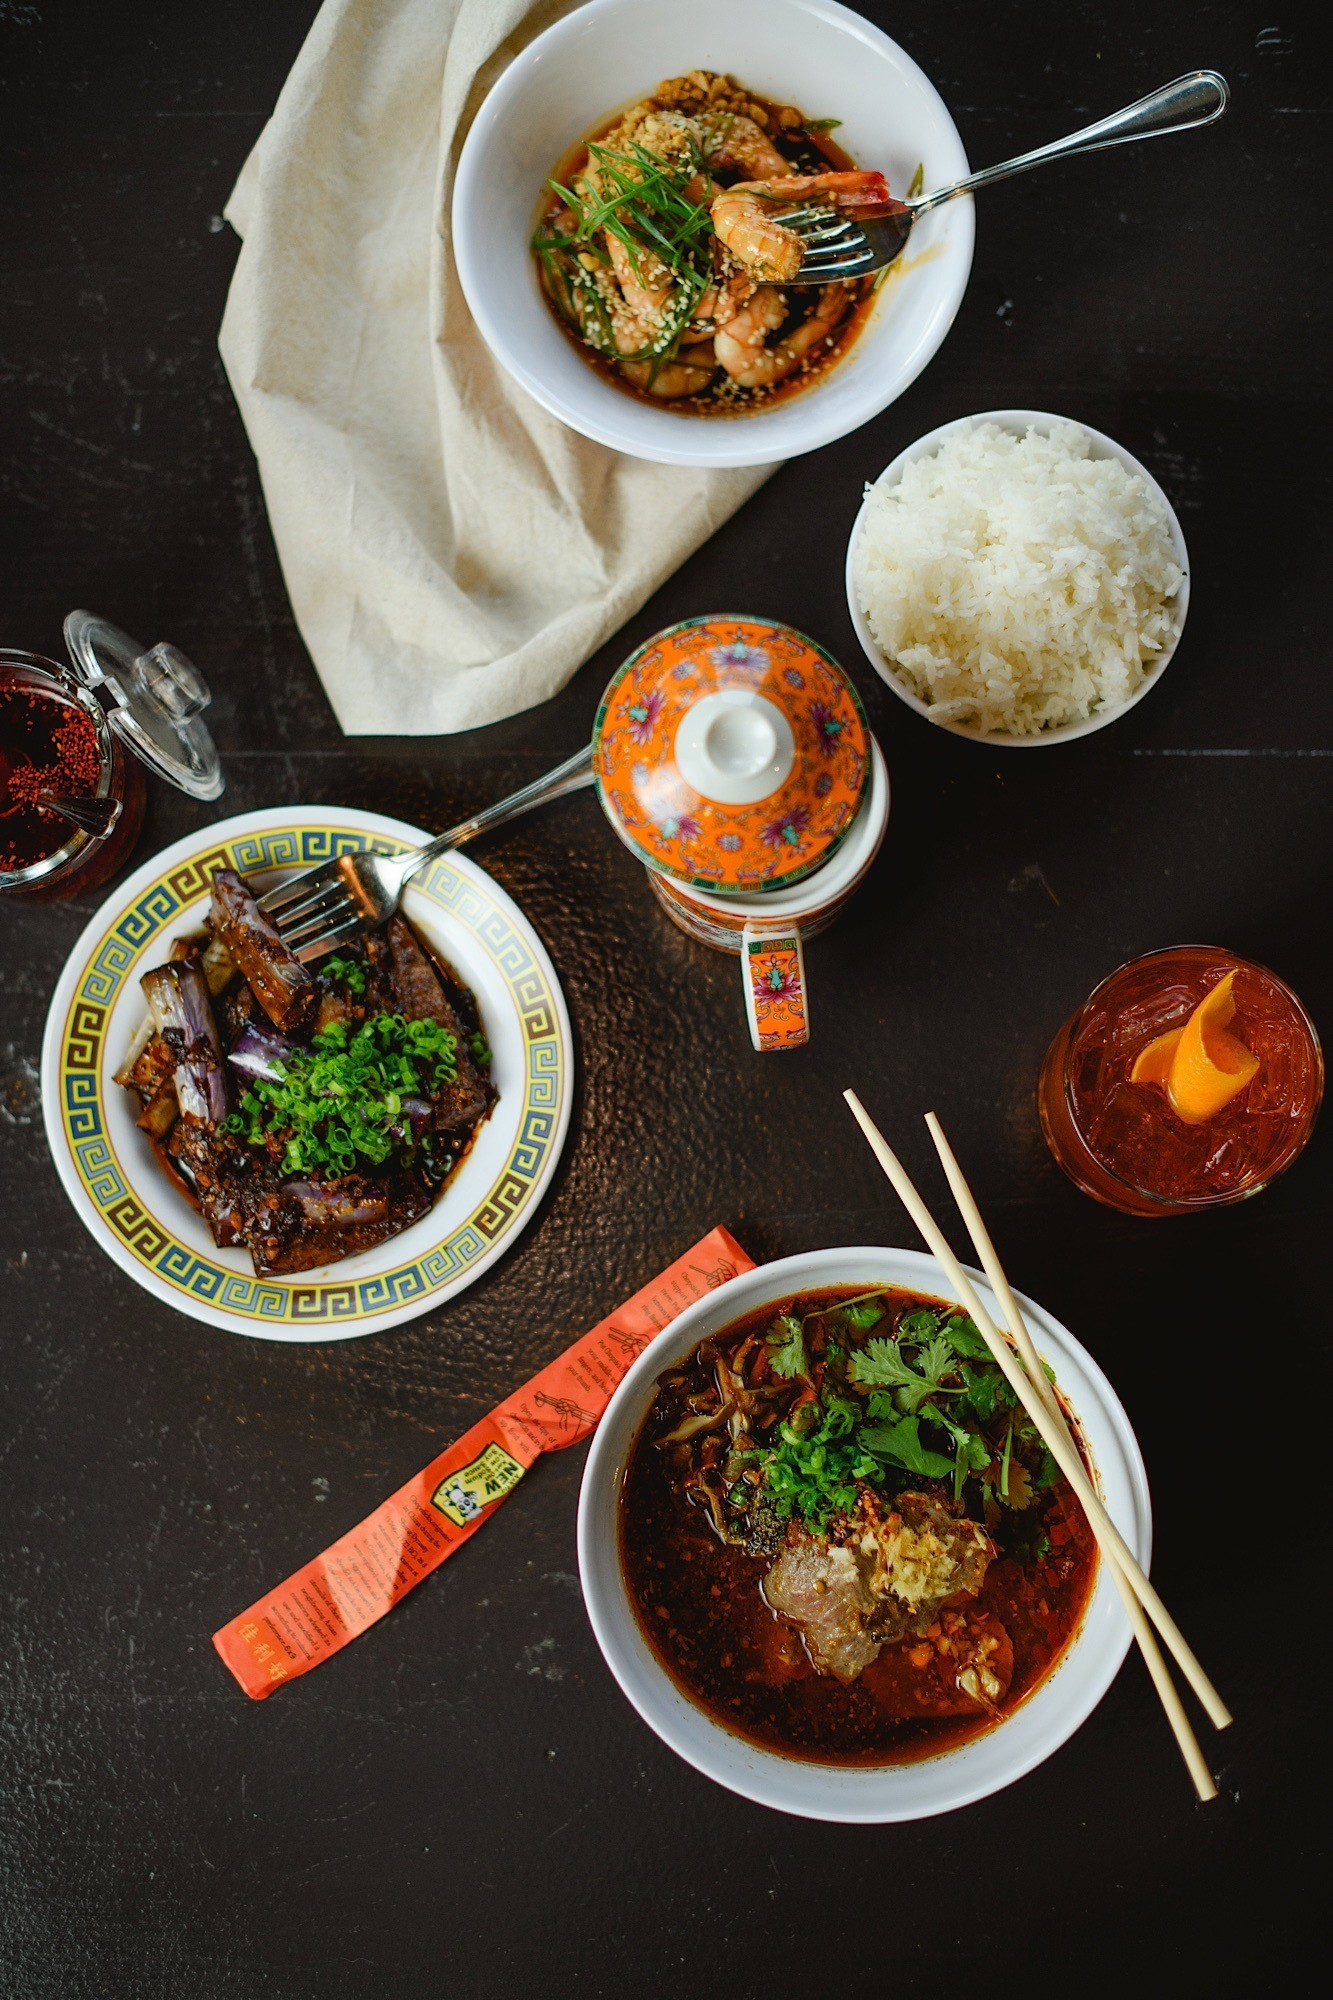 """James Islanders luck out with Kwei Fei's unlikely arrival and bold flavors"" - -Vanessa Wolf, Charleston City Paper"